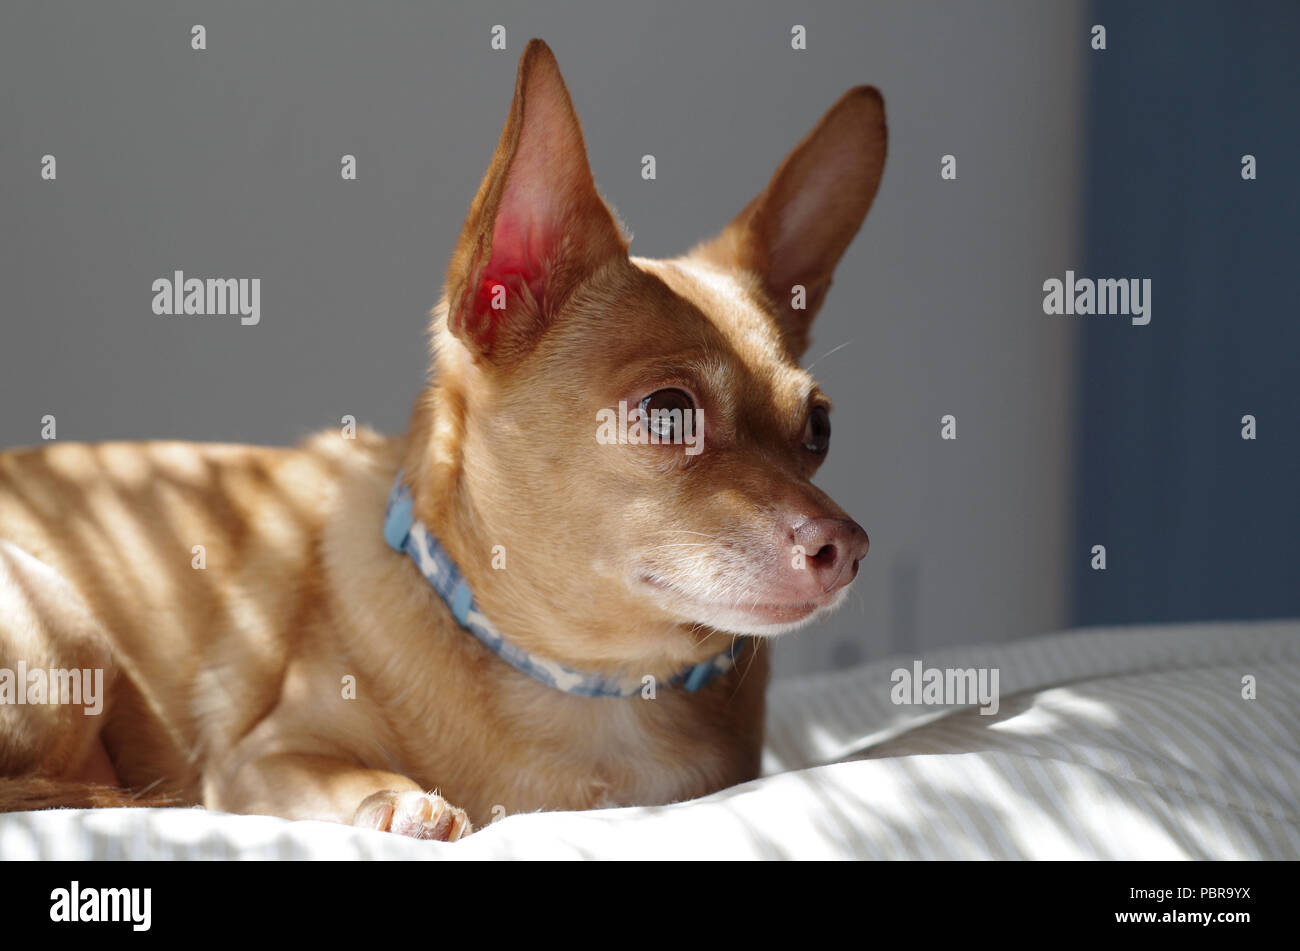 Our little rescue Chiweenie, ' Tebo.' Chiweenies are a Chihuahua Dachsund 'designer dog' mix. Great dogs and rather popular now days. - Stock Image